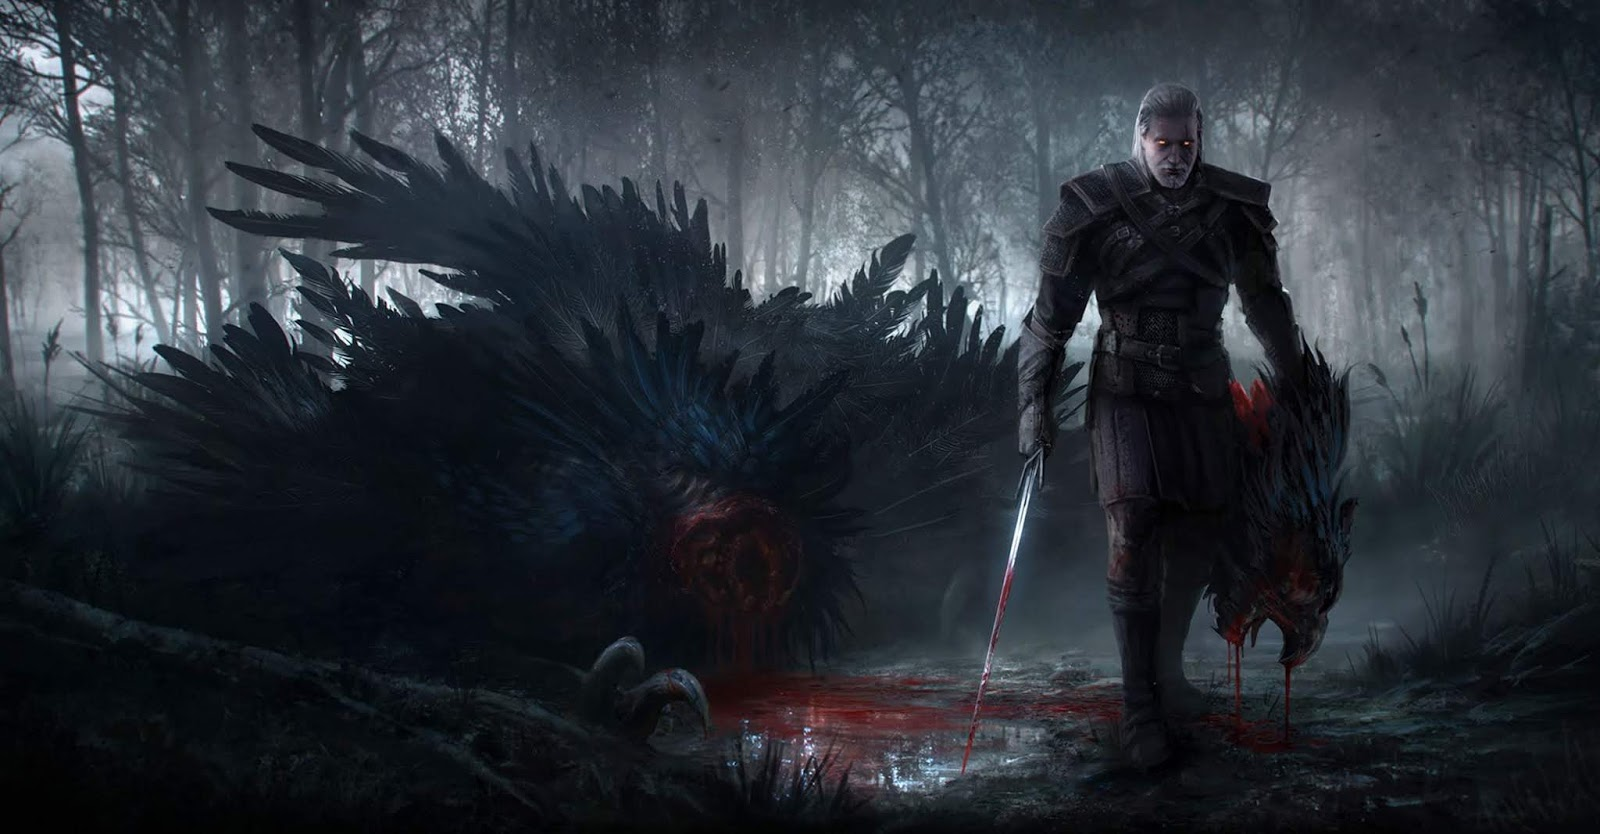 Witcher-wallpaper-for-desktop-hd-download